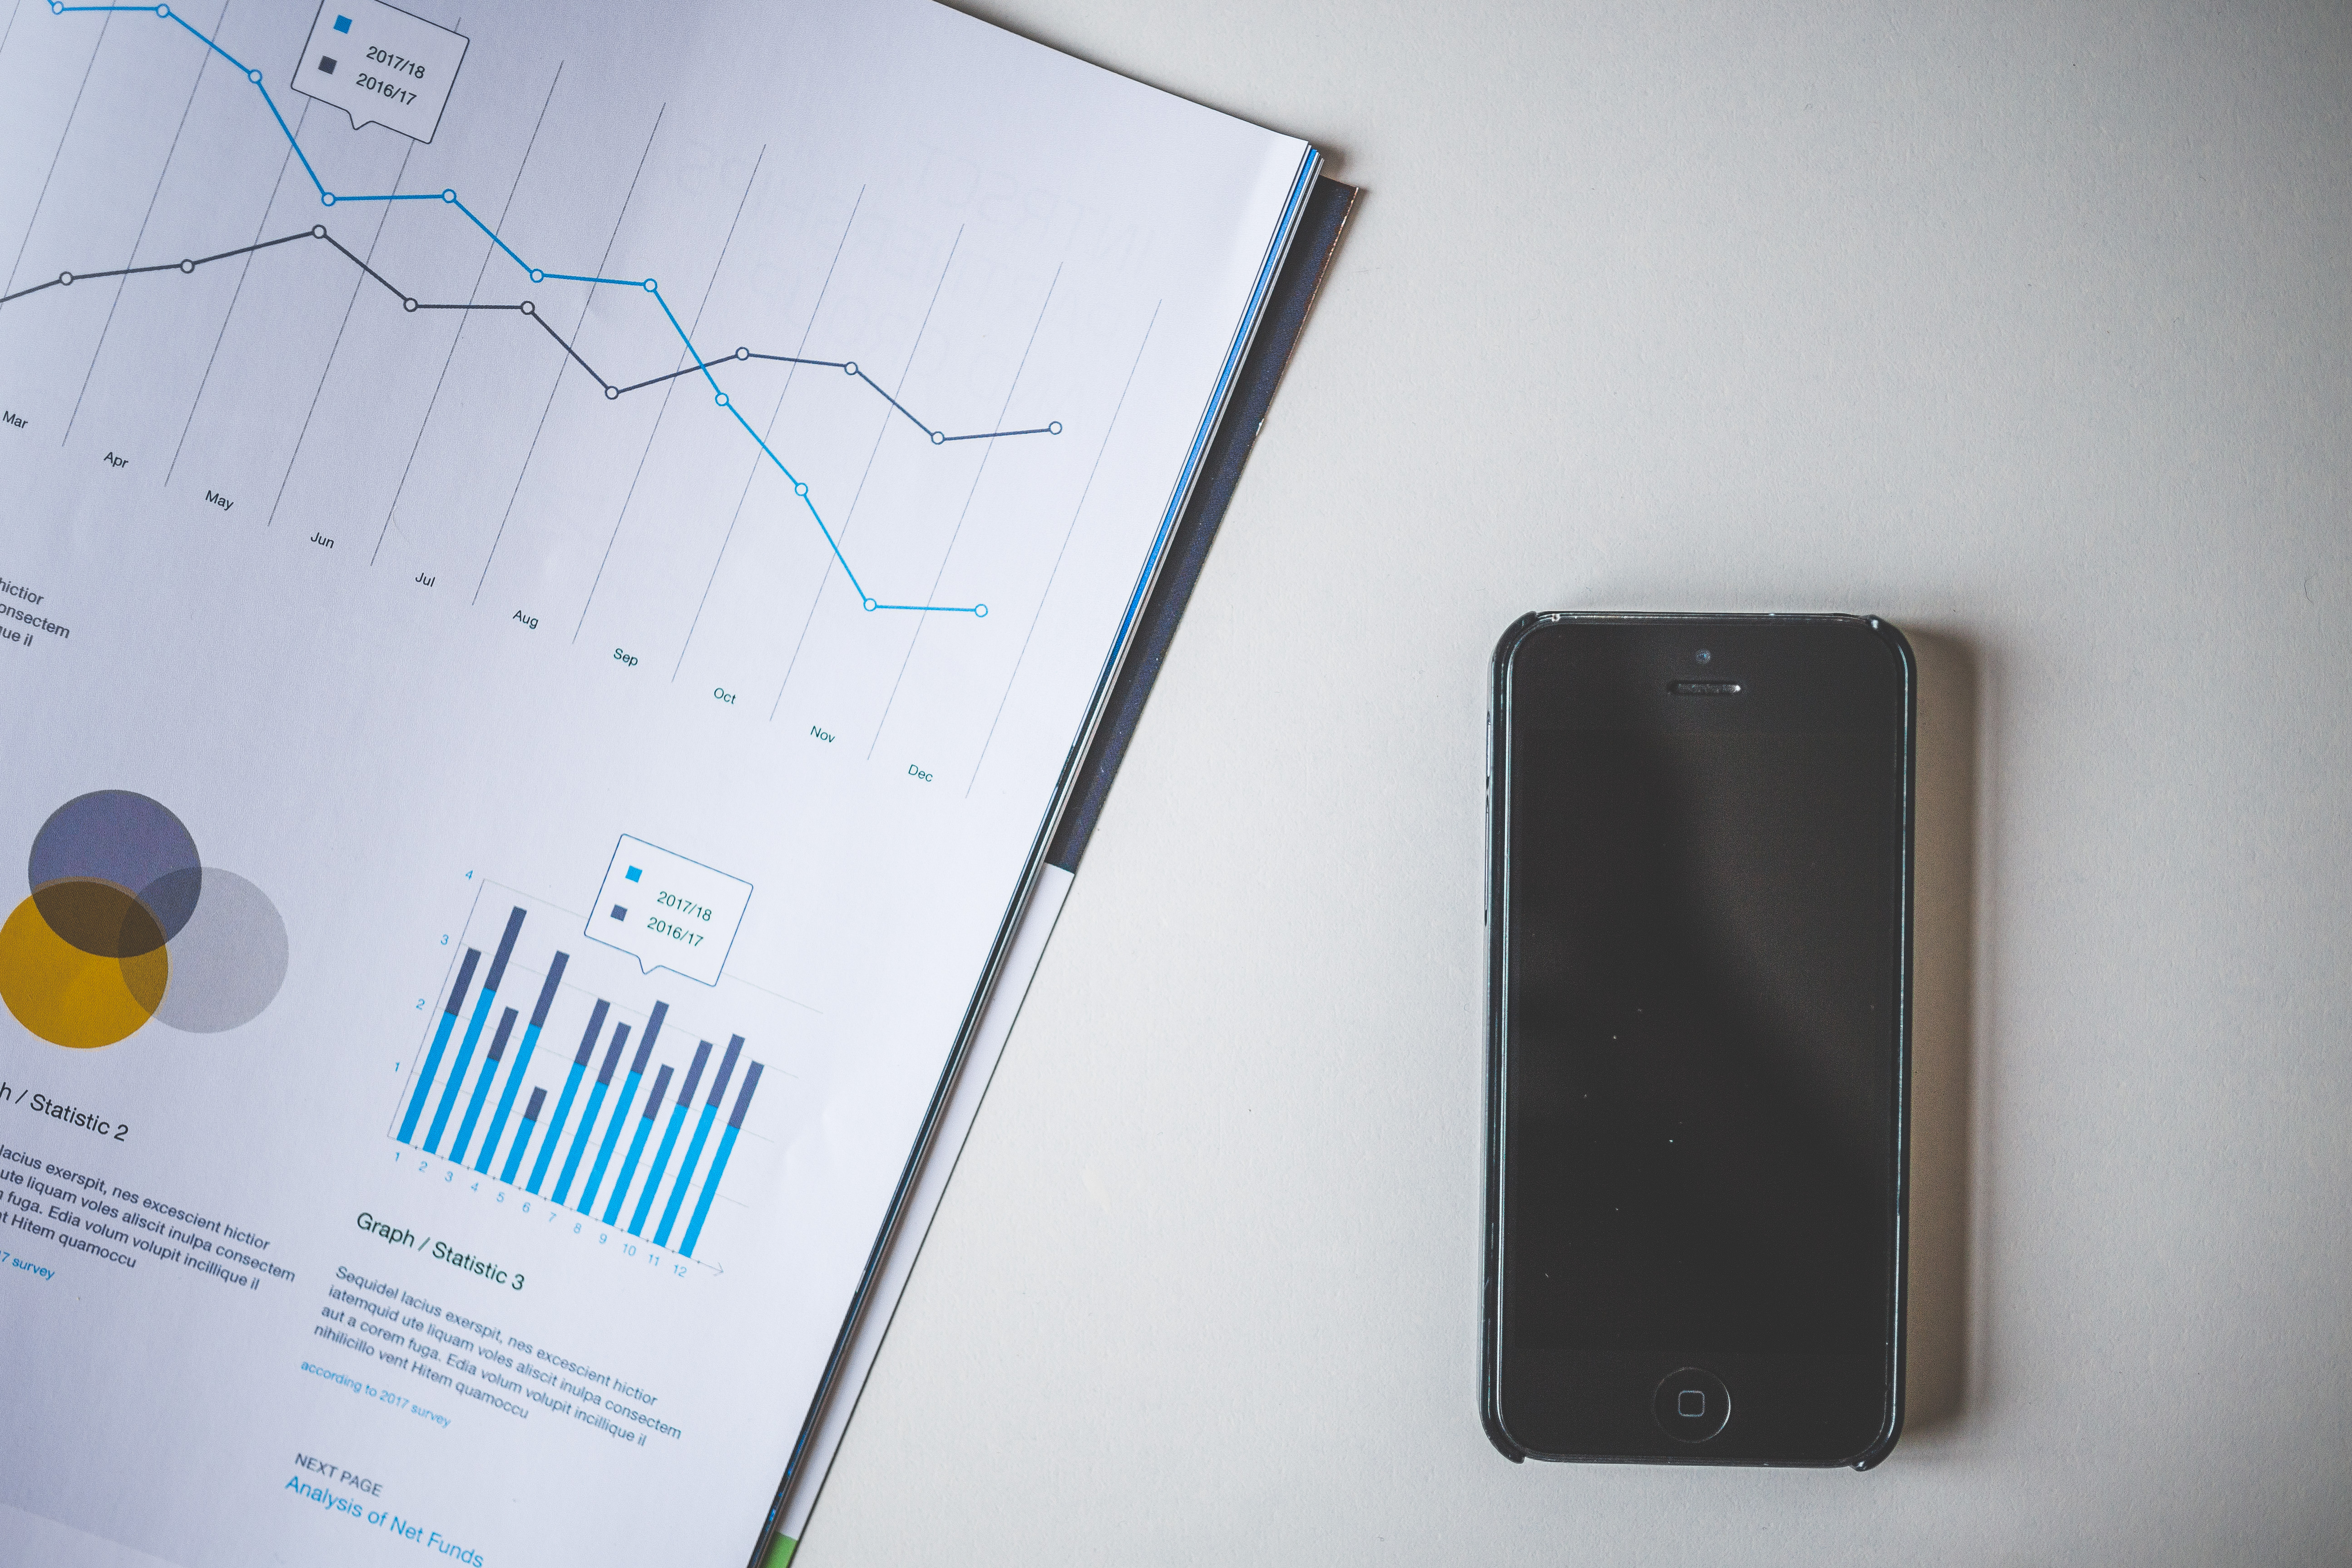 100 Small Business Marketing Statistics And Trends In 2018